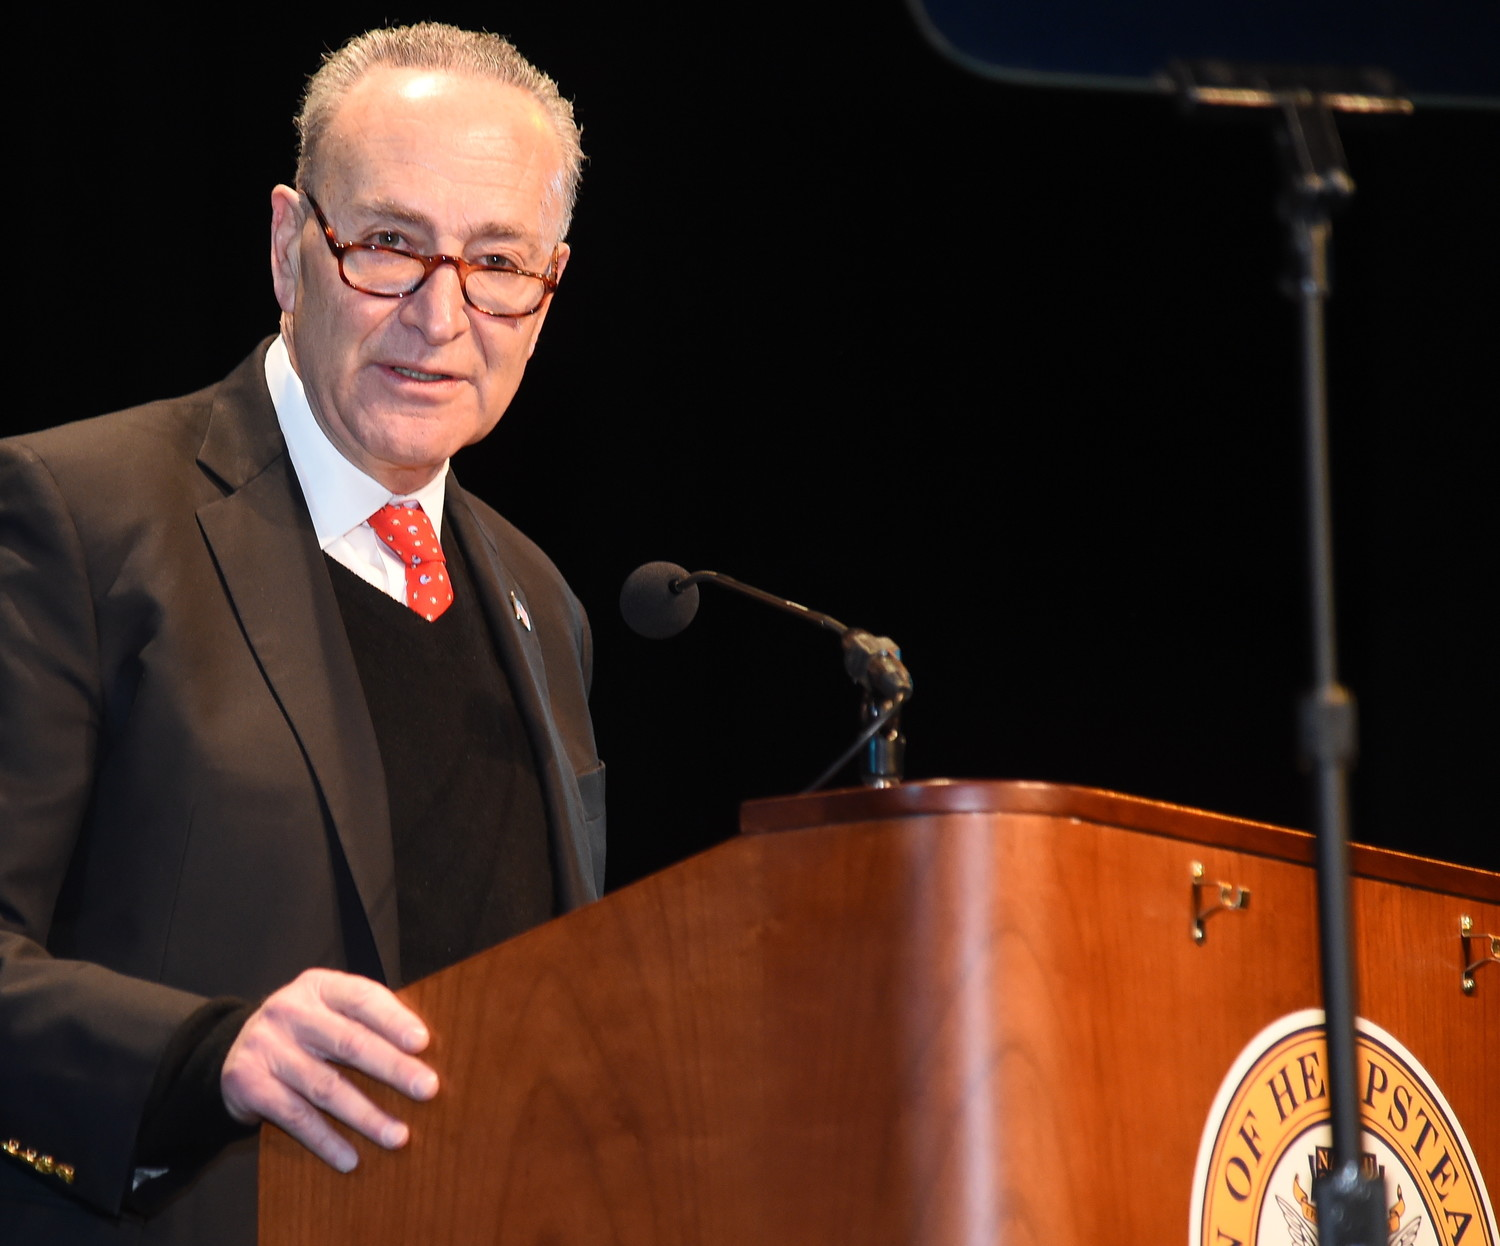 Senator Charles Schumer speaks at the swearing in of Town of Hempstead Supervisor Laura Gillen on Jan 1.